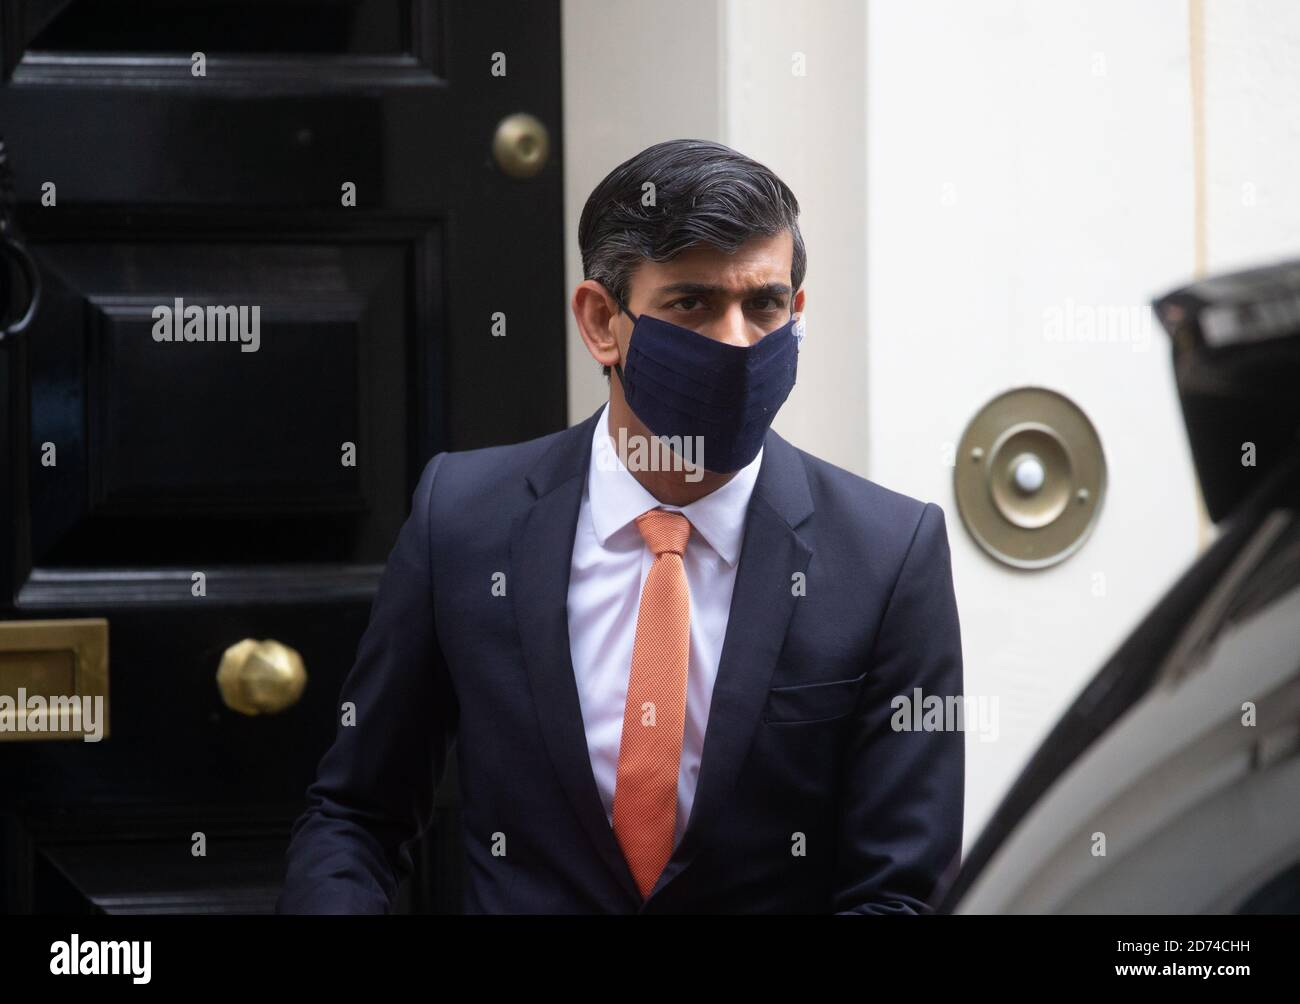 London, UK. 20th Oct, 2020. Chancellor of the Exchequer, Rishi Sunak, leaves Number 11 Downing Street to go to Parliament. Credit: Mark Thomas/Alamy Live News Stock Photo